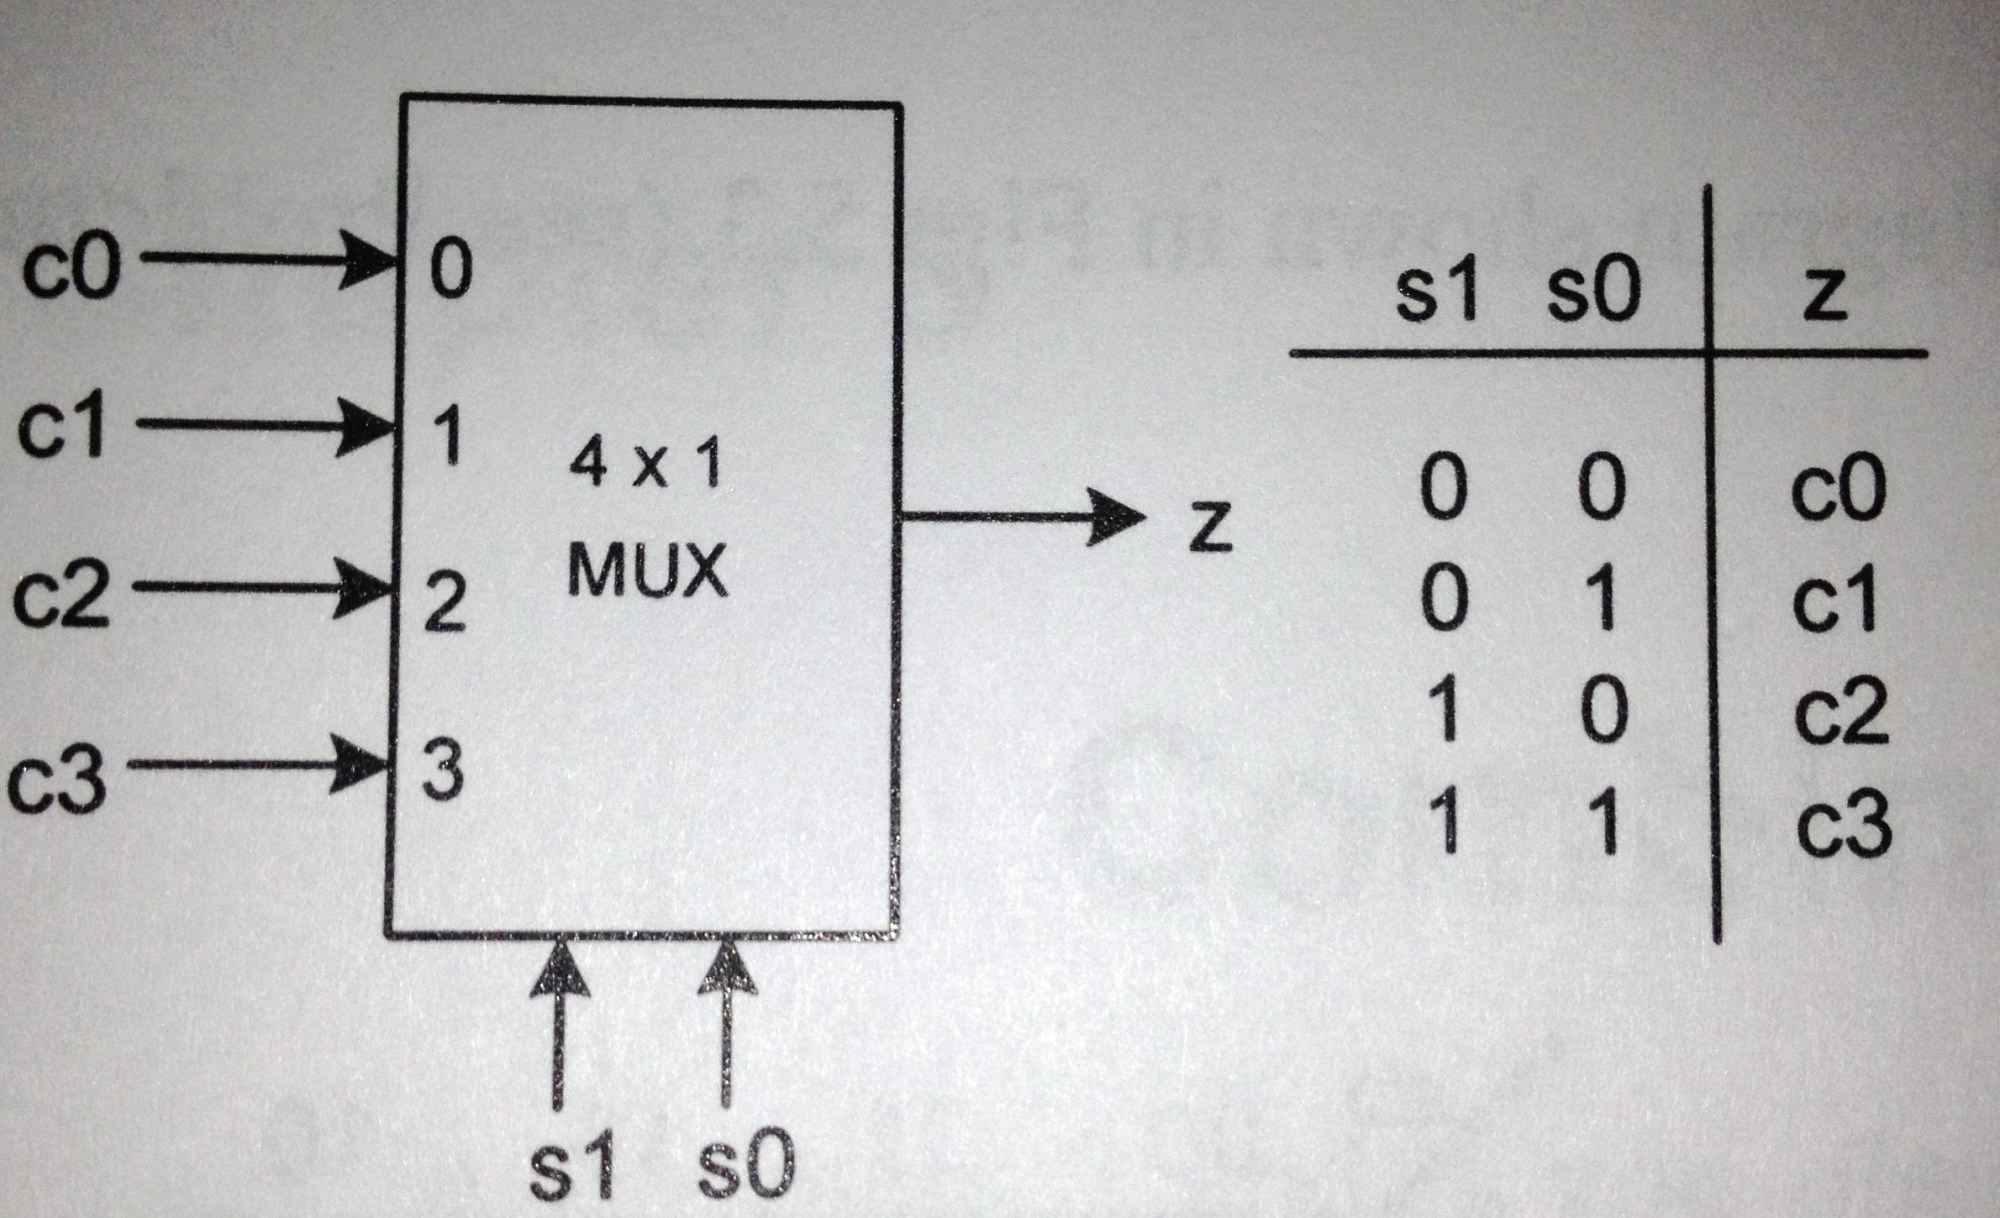 hight resolution of a 4 to 1 multiplexer